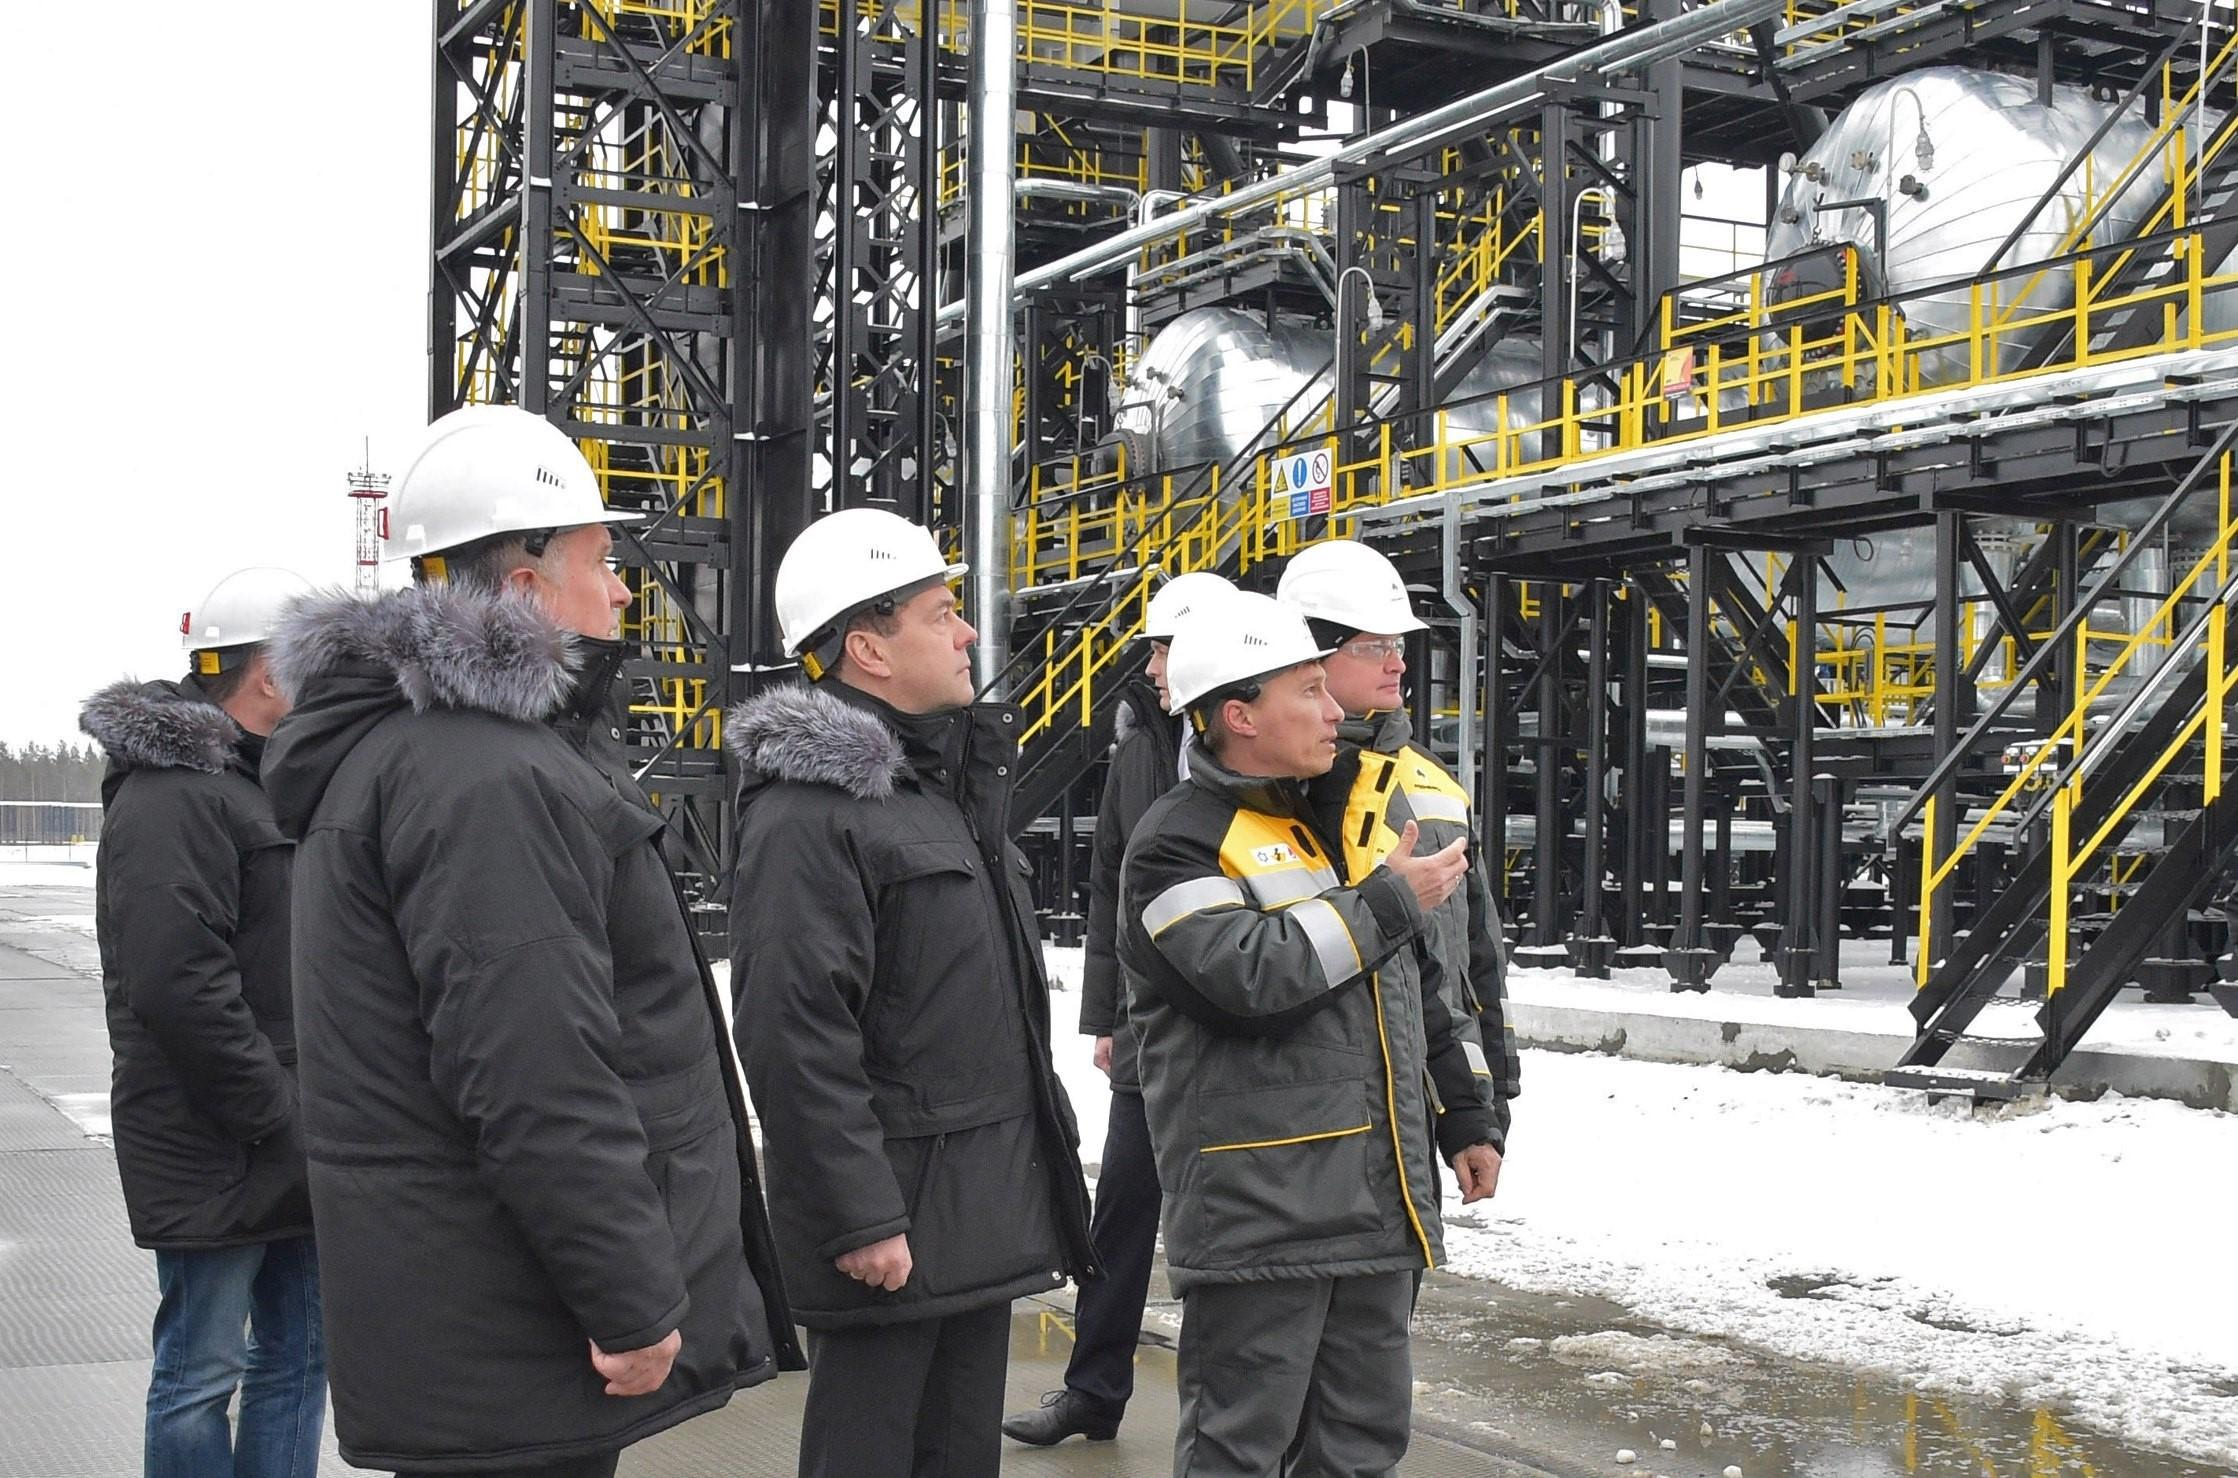 Russian Prime Minister Dmitry Medvedev (C) and Rosneft Chief Executive Igor Sechin (L) inspect production facilities at the Kondinsky group of oil fields in Khanty-Mansi Autonomous District - Yugra, Russia November 21, 2017. Sputnik/Alexander Astafyev/Pool via